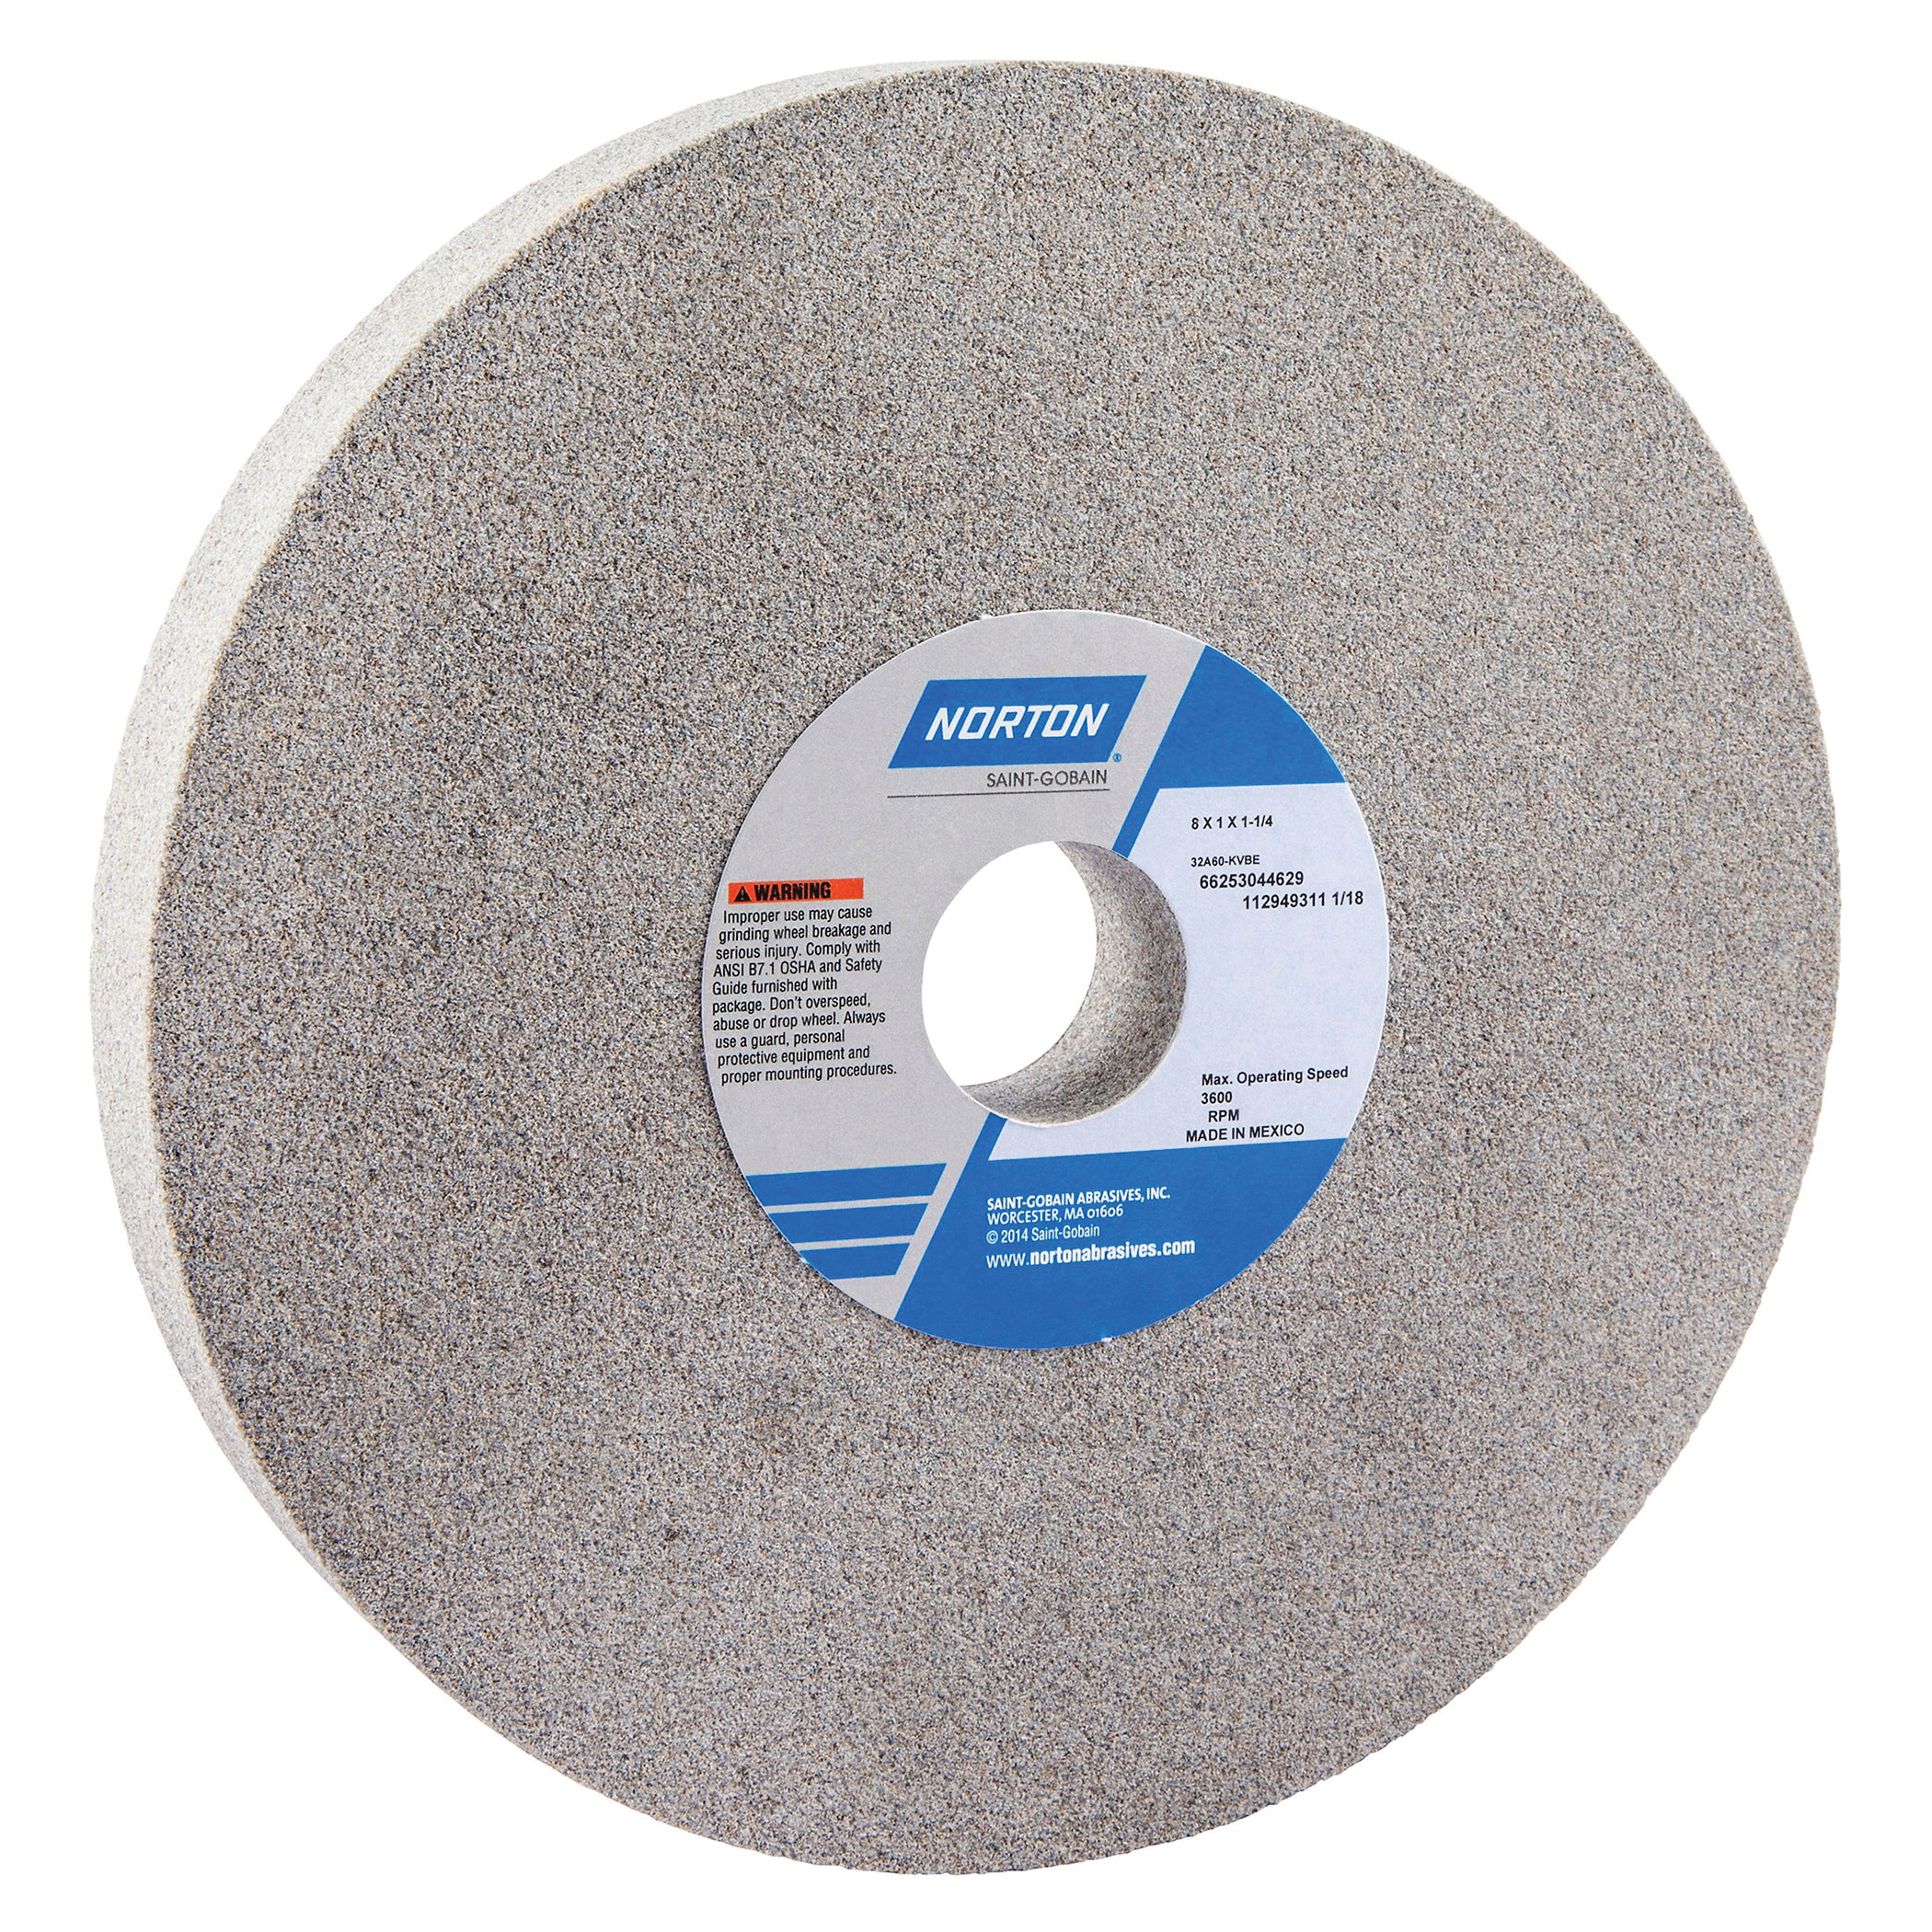 Norton® 66253044629 32A Straight Toolroom Wheel, 8 in Dia x 1 in THK, 1-1/4 in Center Hole, 60 Grit, Aluminum Oxide Abrasive